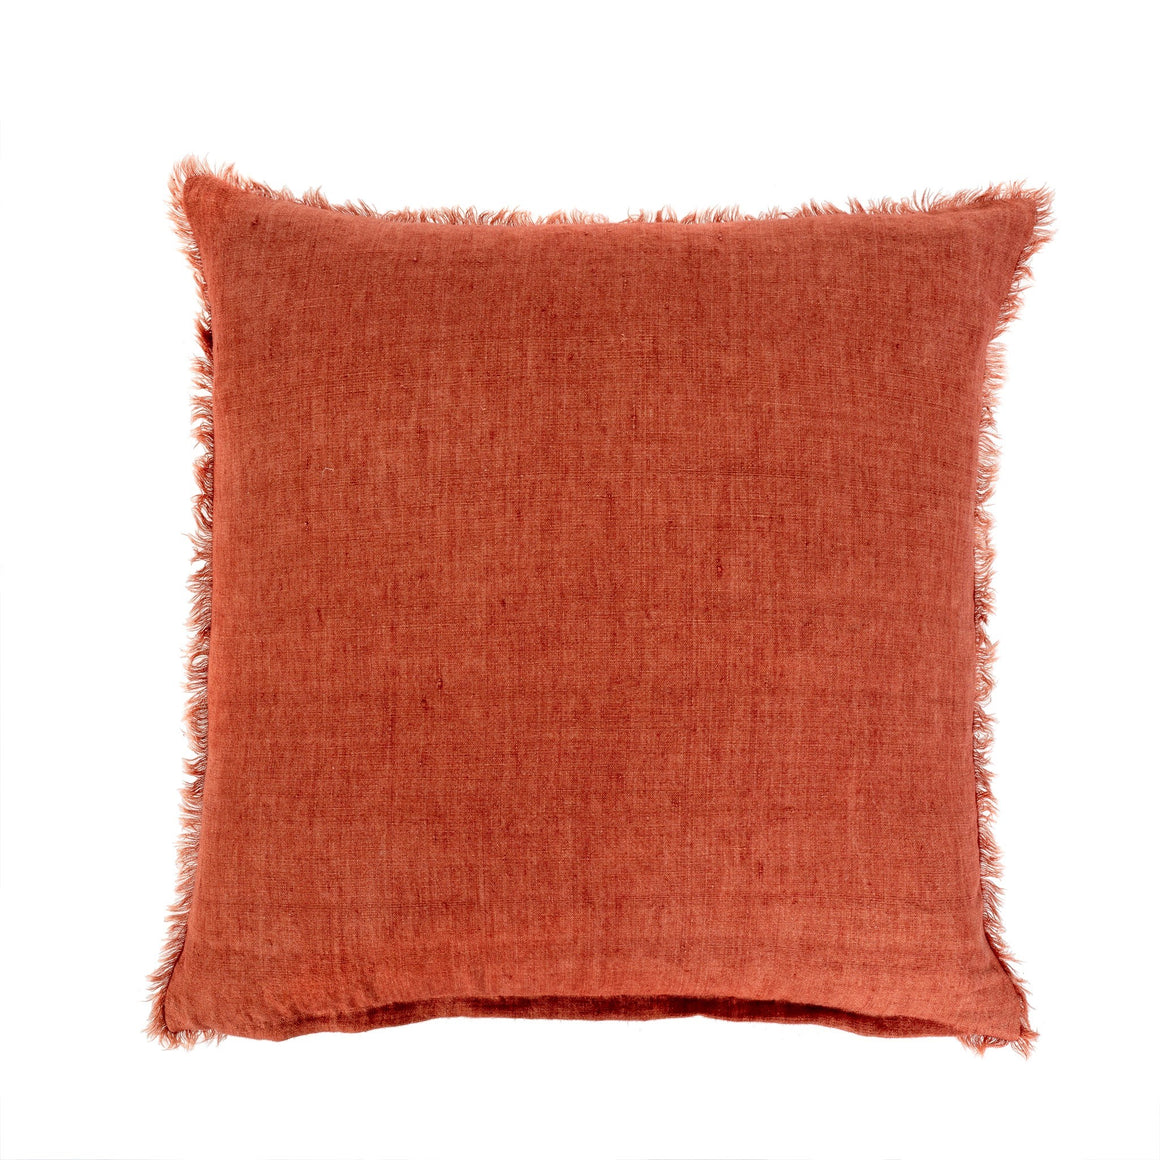 Rust Linen Pillow